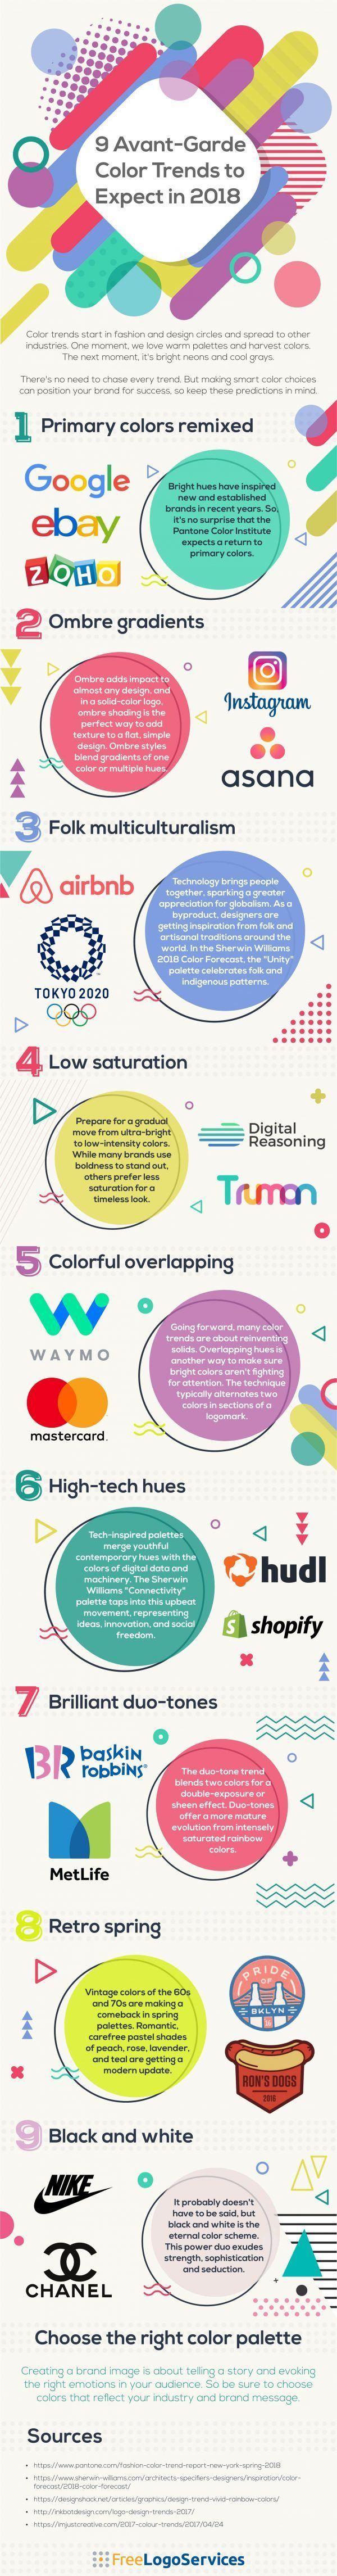 9 Colour Trends That Could Affect Your Marketing Strategy in 2018 [Infographic]